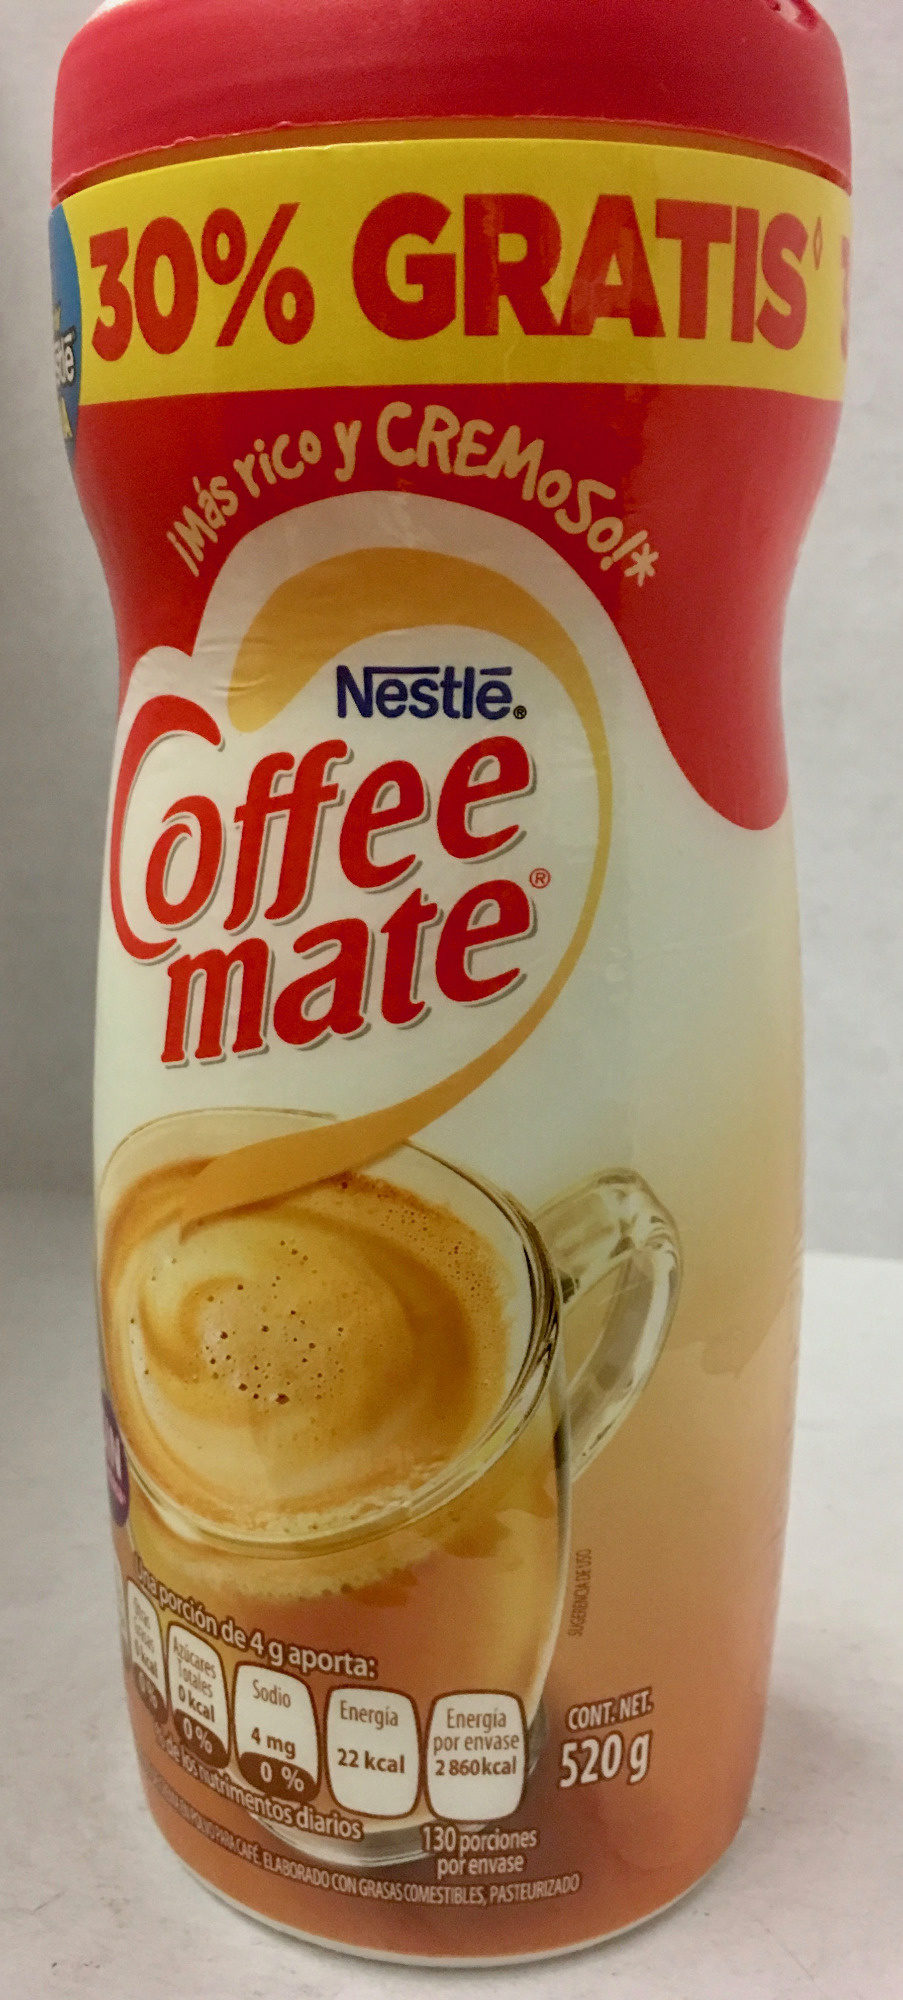 Coffee mate - Product - es